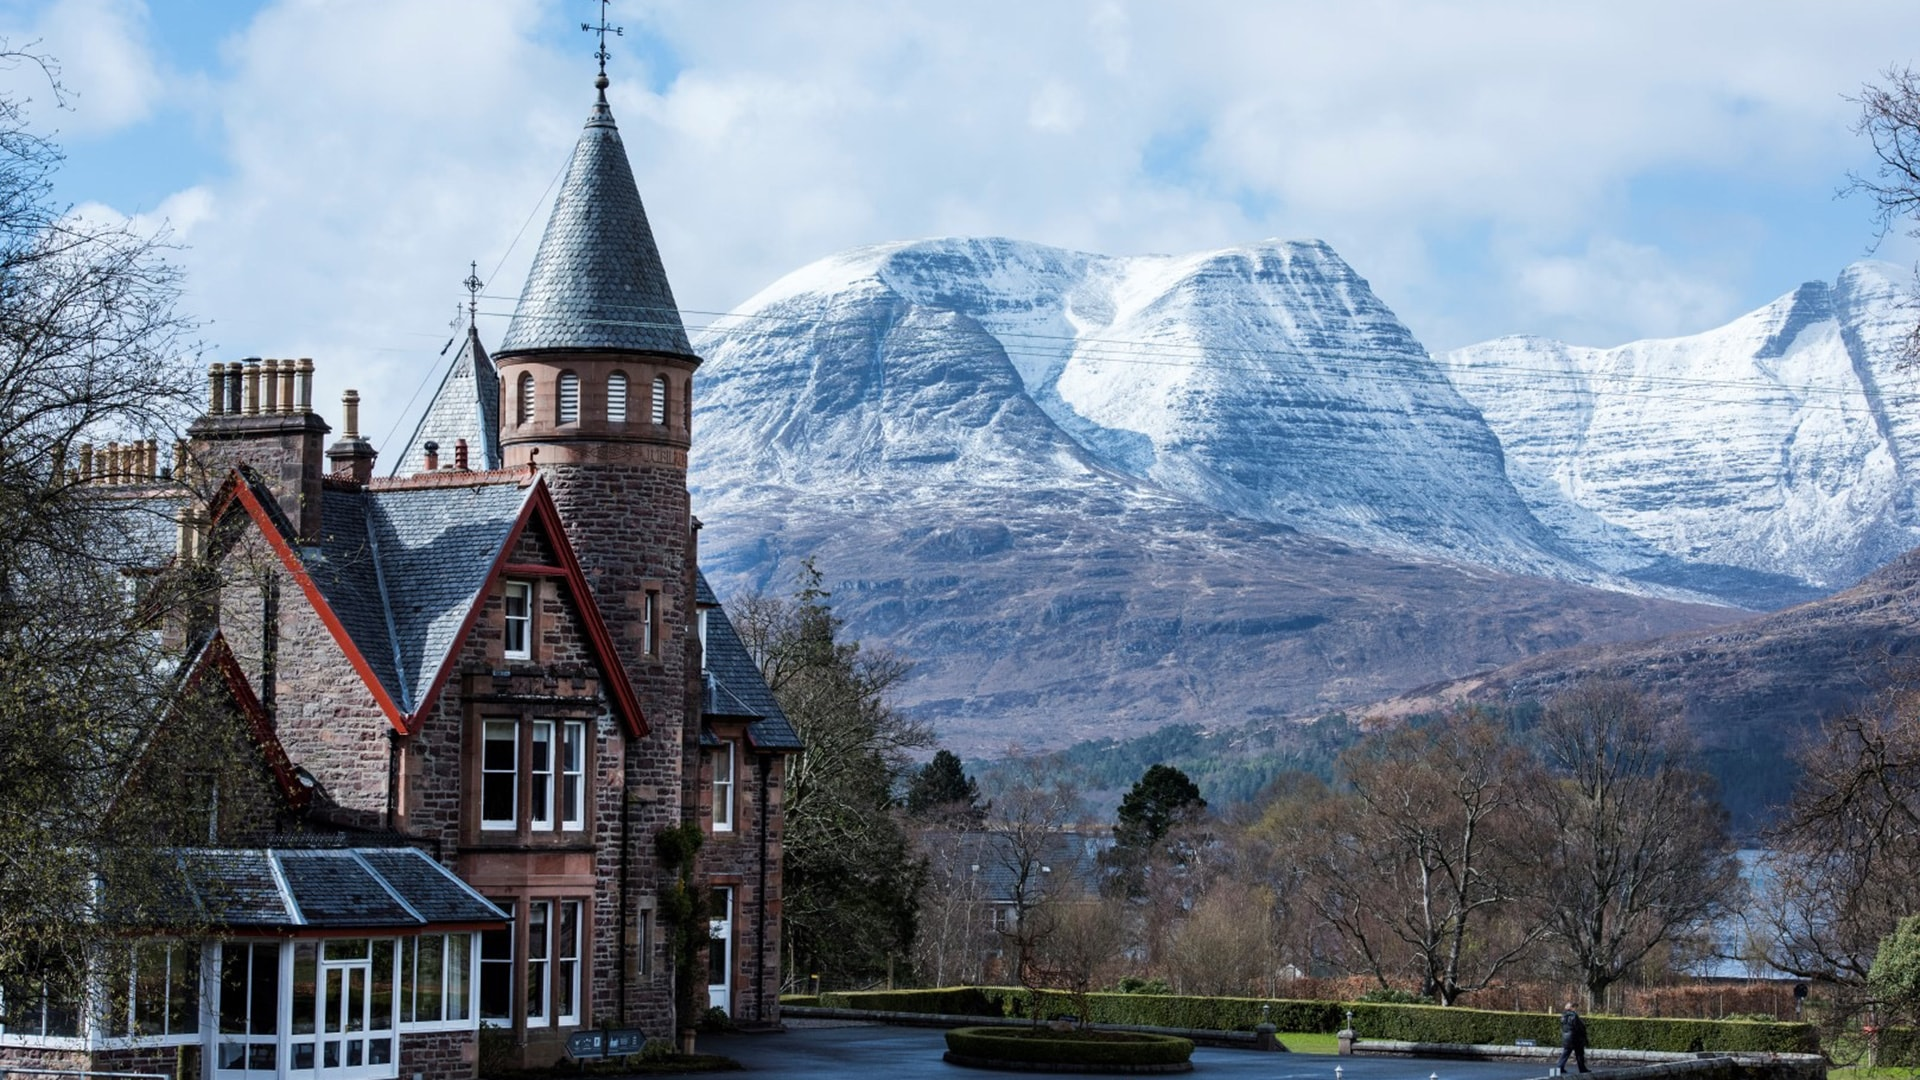 The Torridon Hotel By Achnasheen Wester Ross Scotland